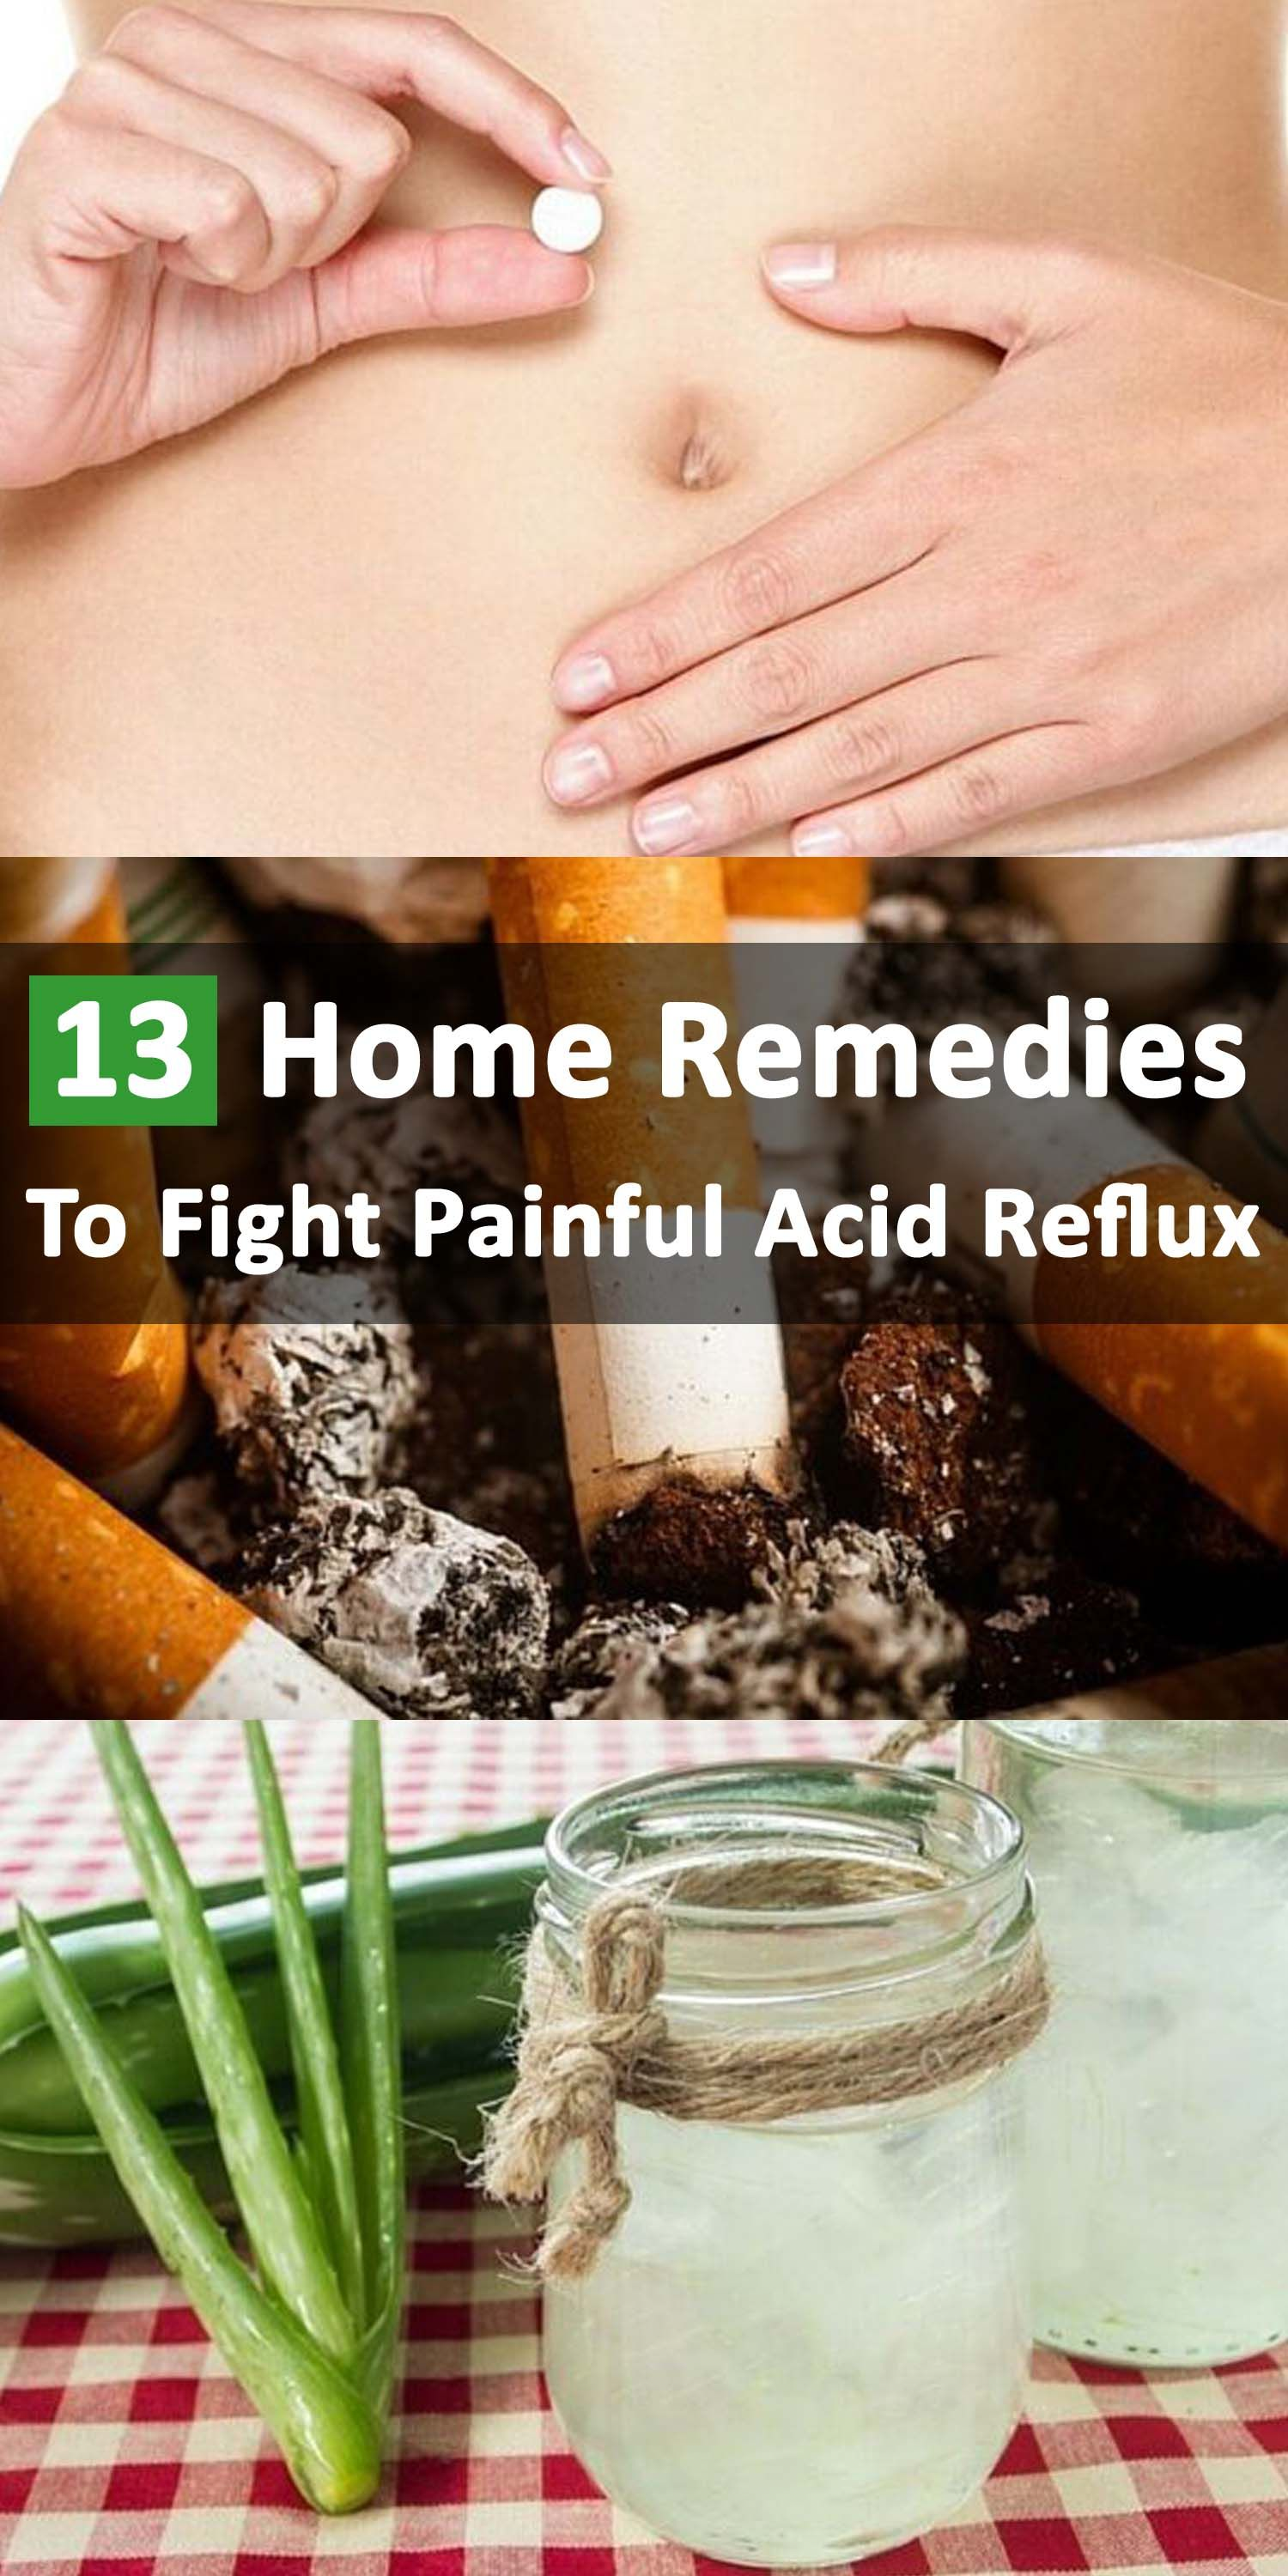 Heartburn Relief Home Reme s For Acid Reflux